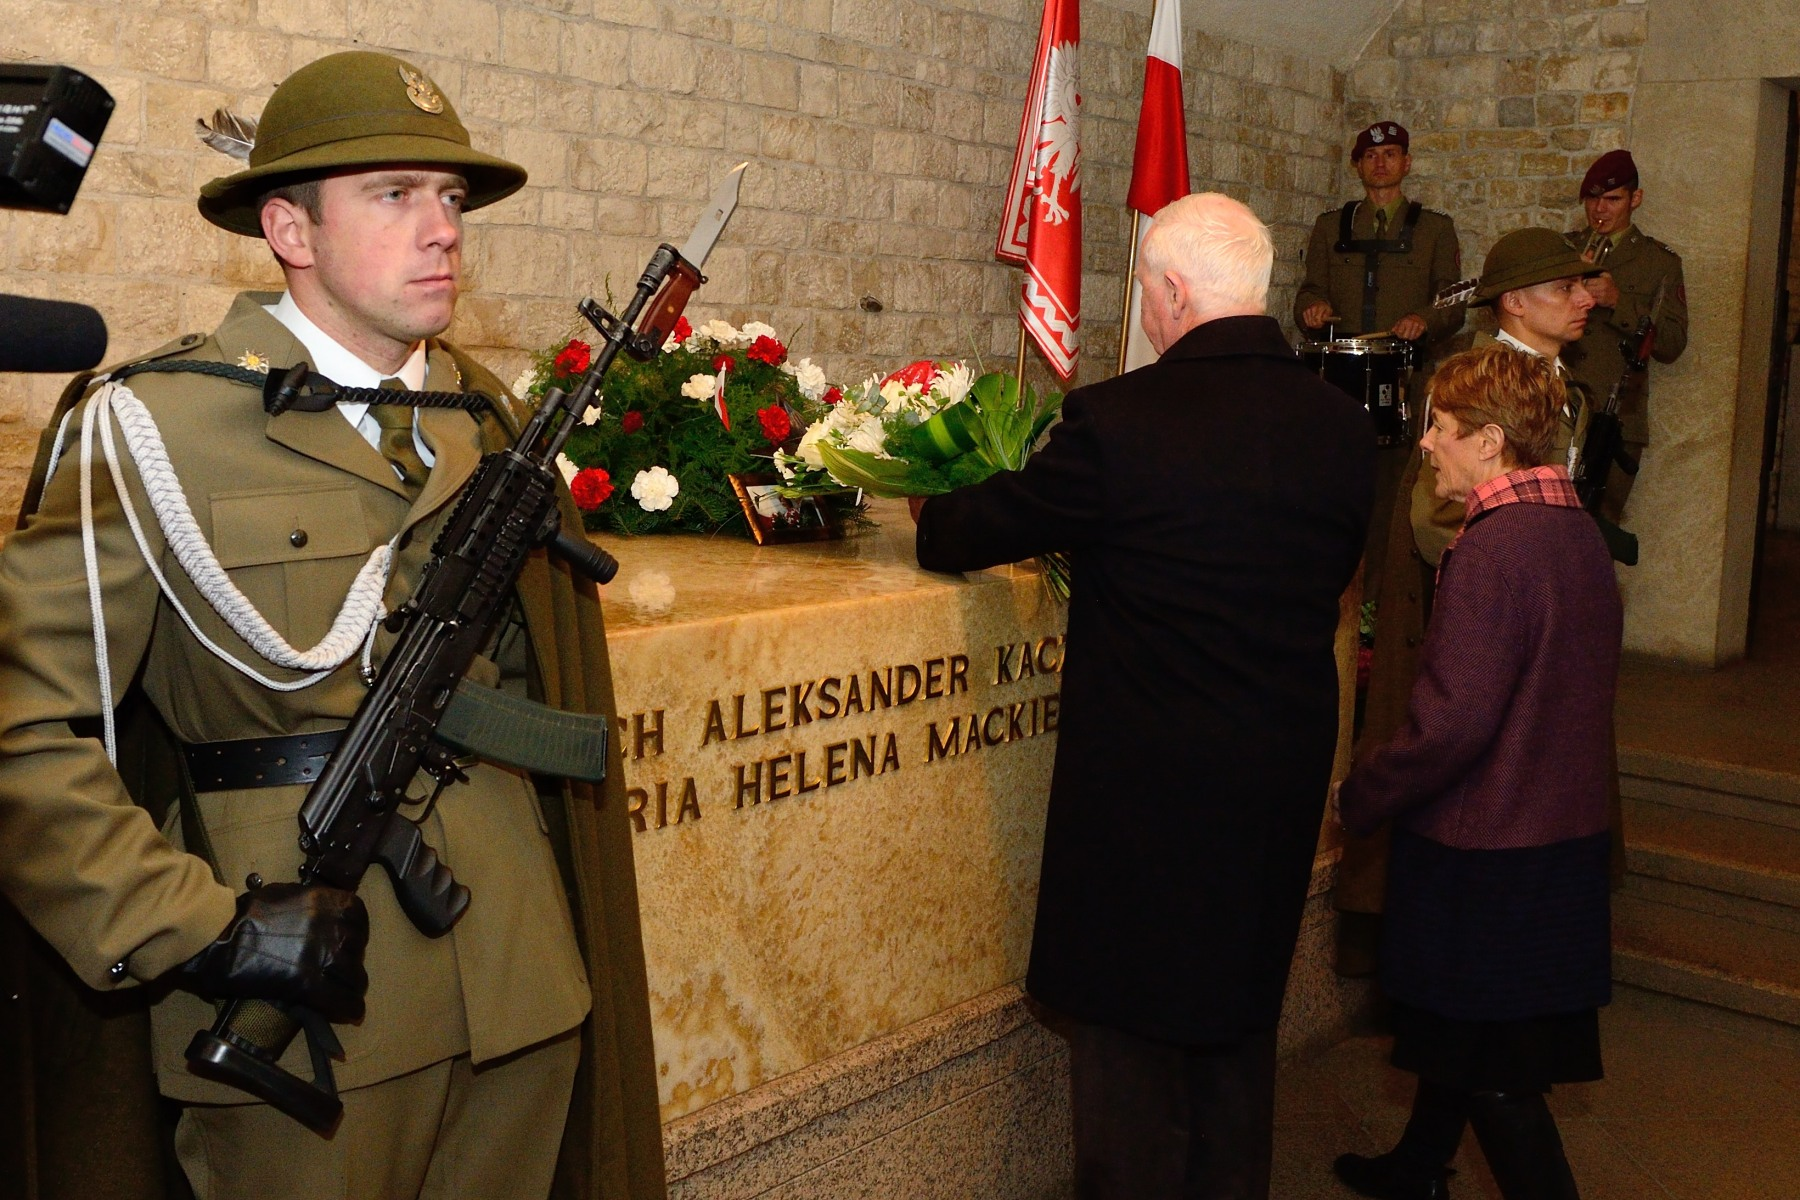 At the end of their visit, Their Excellencies laid a wreath of flowers on the tomb of the former President Lech Kaczynski, in Wawel Cathedral.